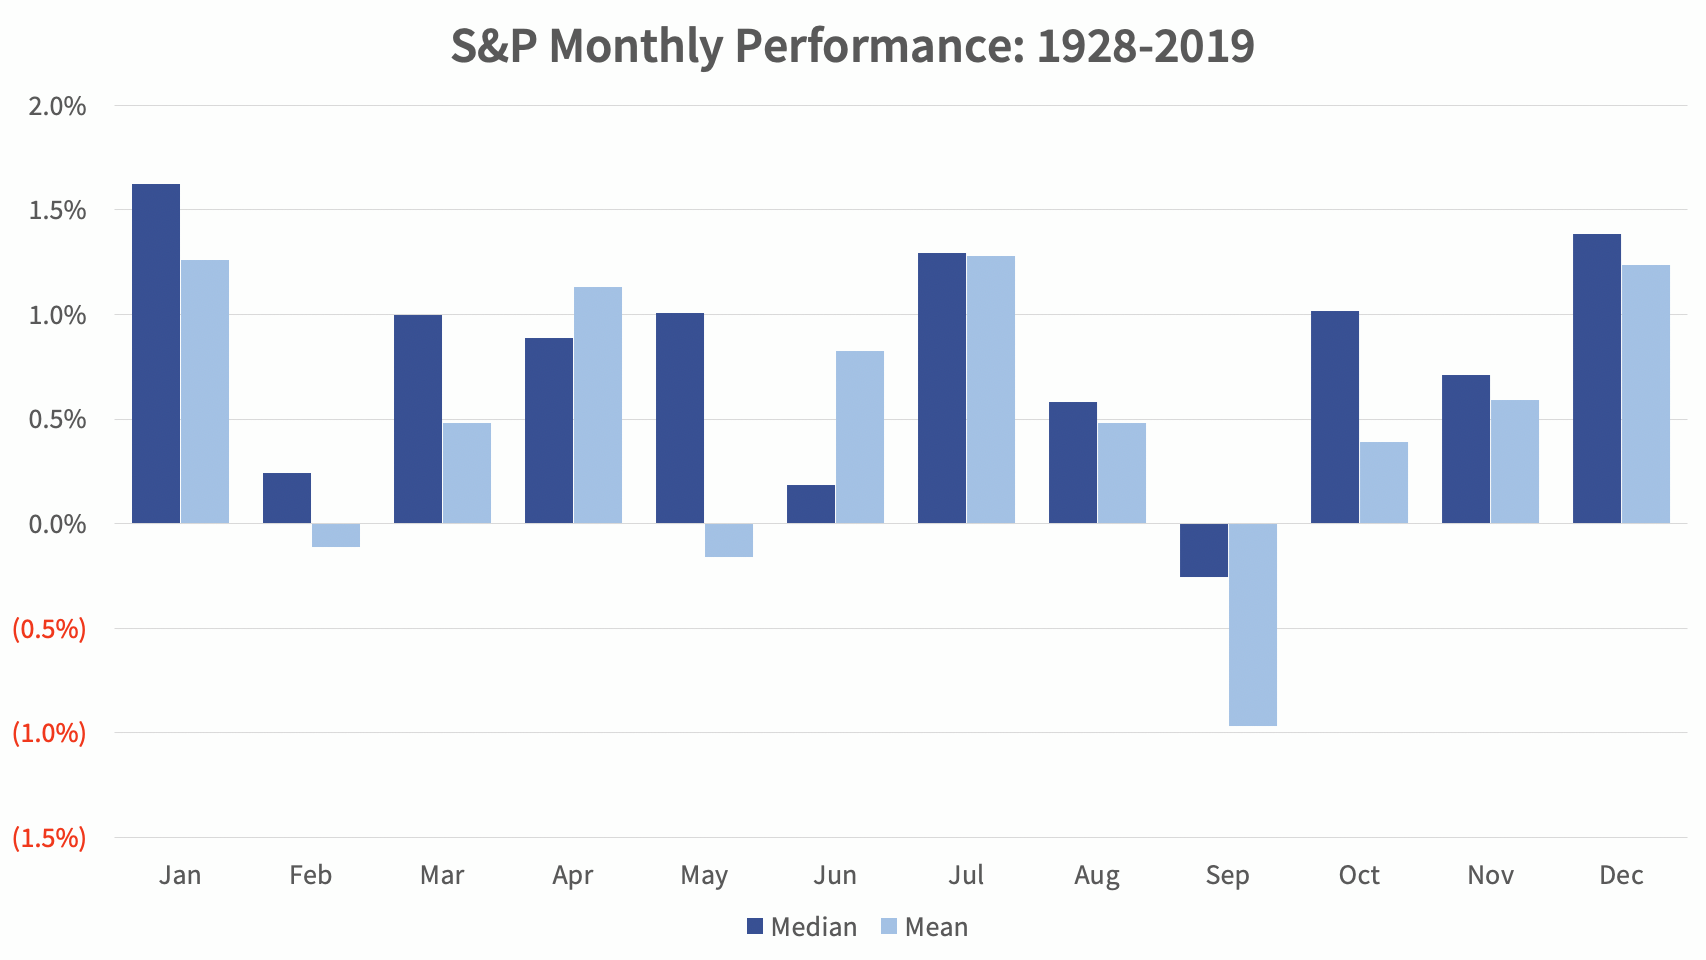 S&P Monthly Performance (1928-2019)